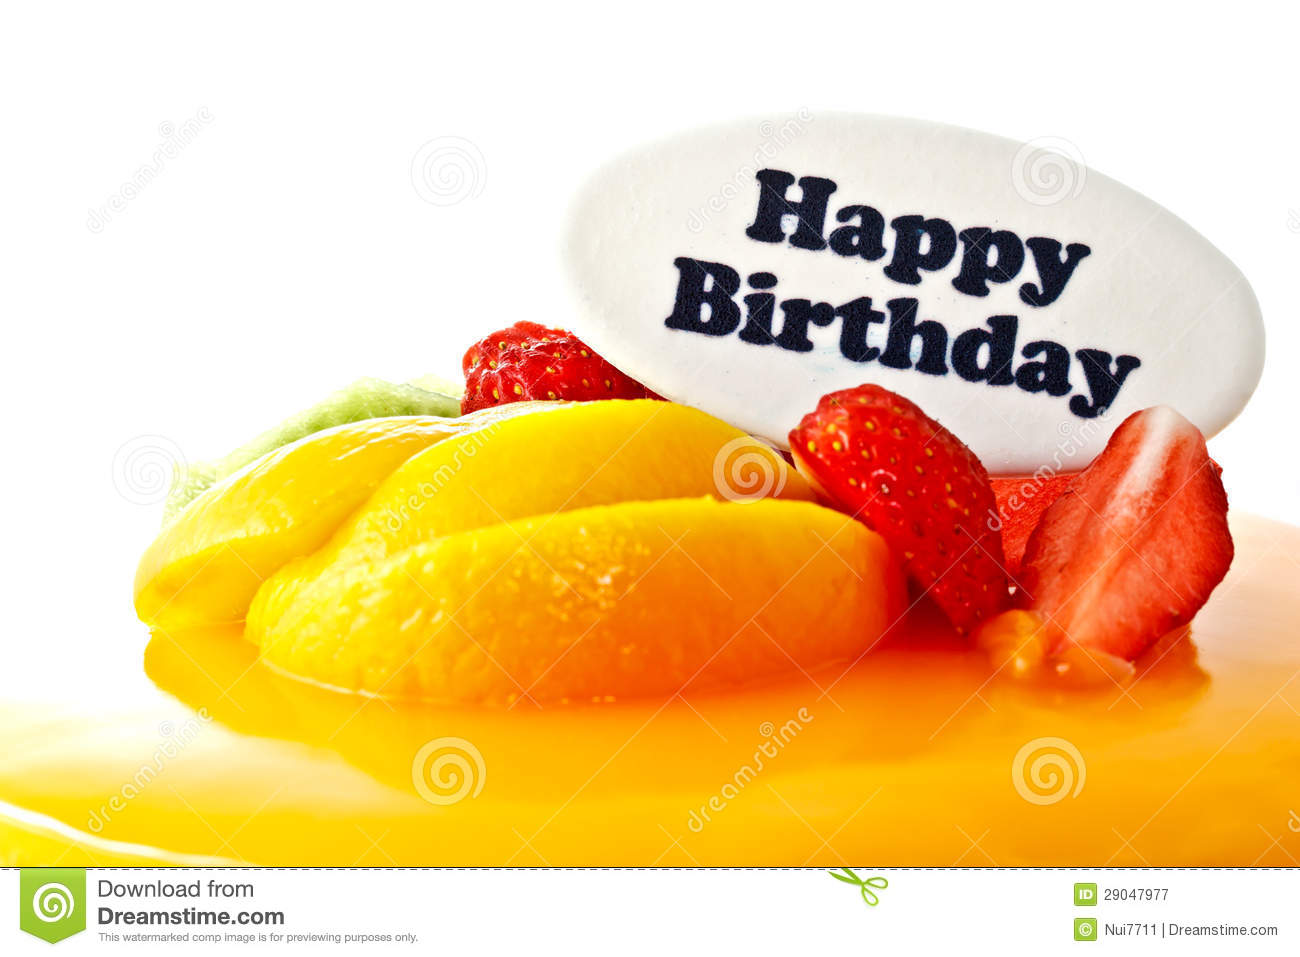 Happy Birthday Cookie On Strawberry Fresh Cream Cake Fruit White Background Royalty Free Stock Photography